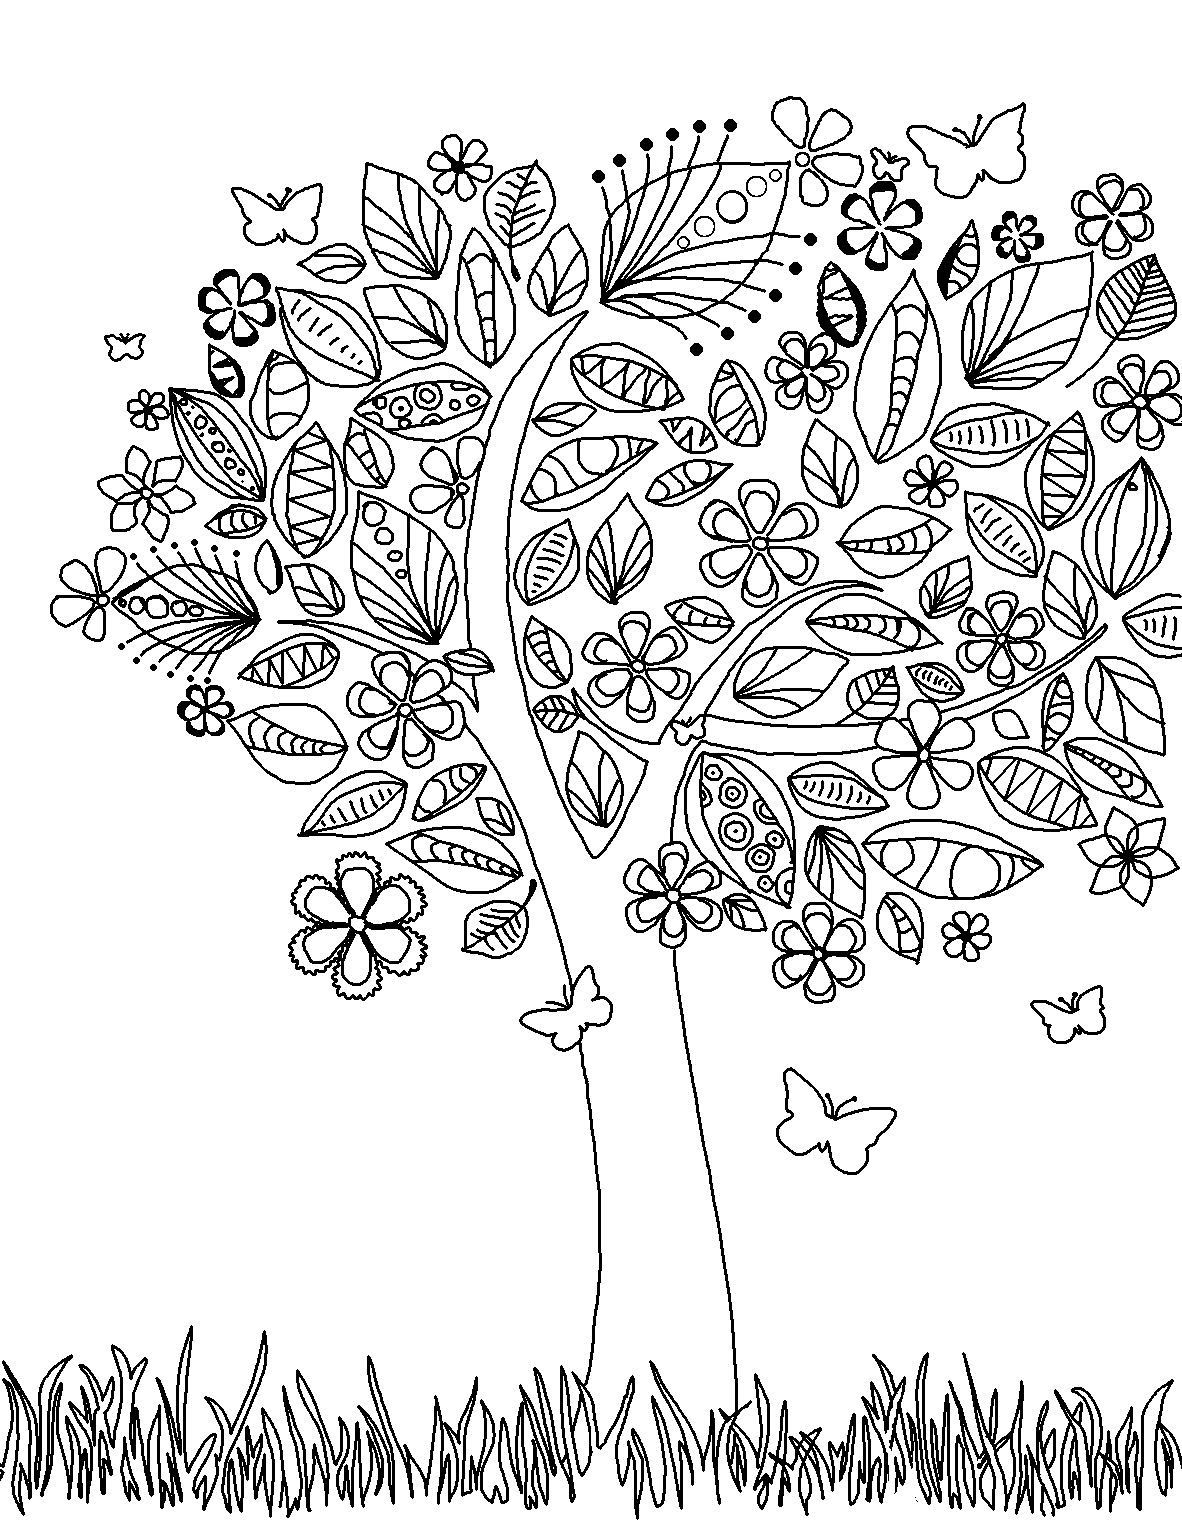 free coloring pages my frugal adventures